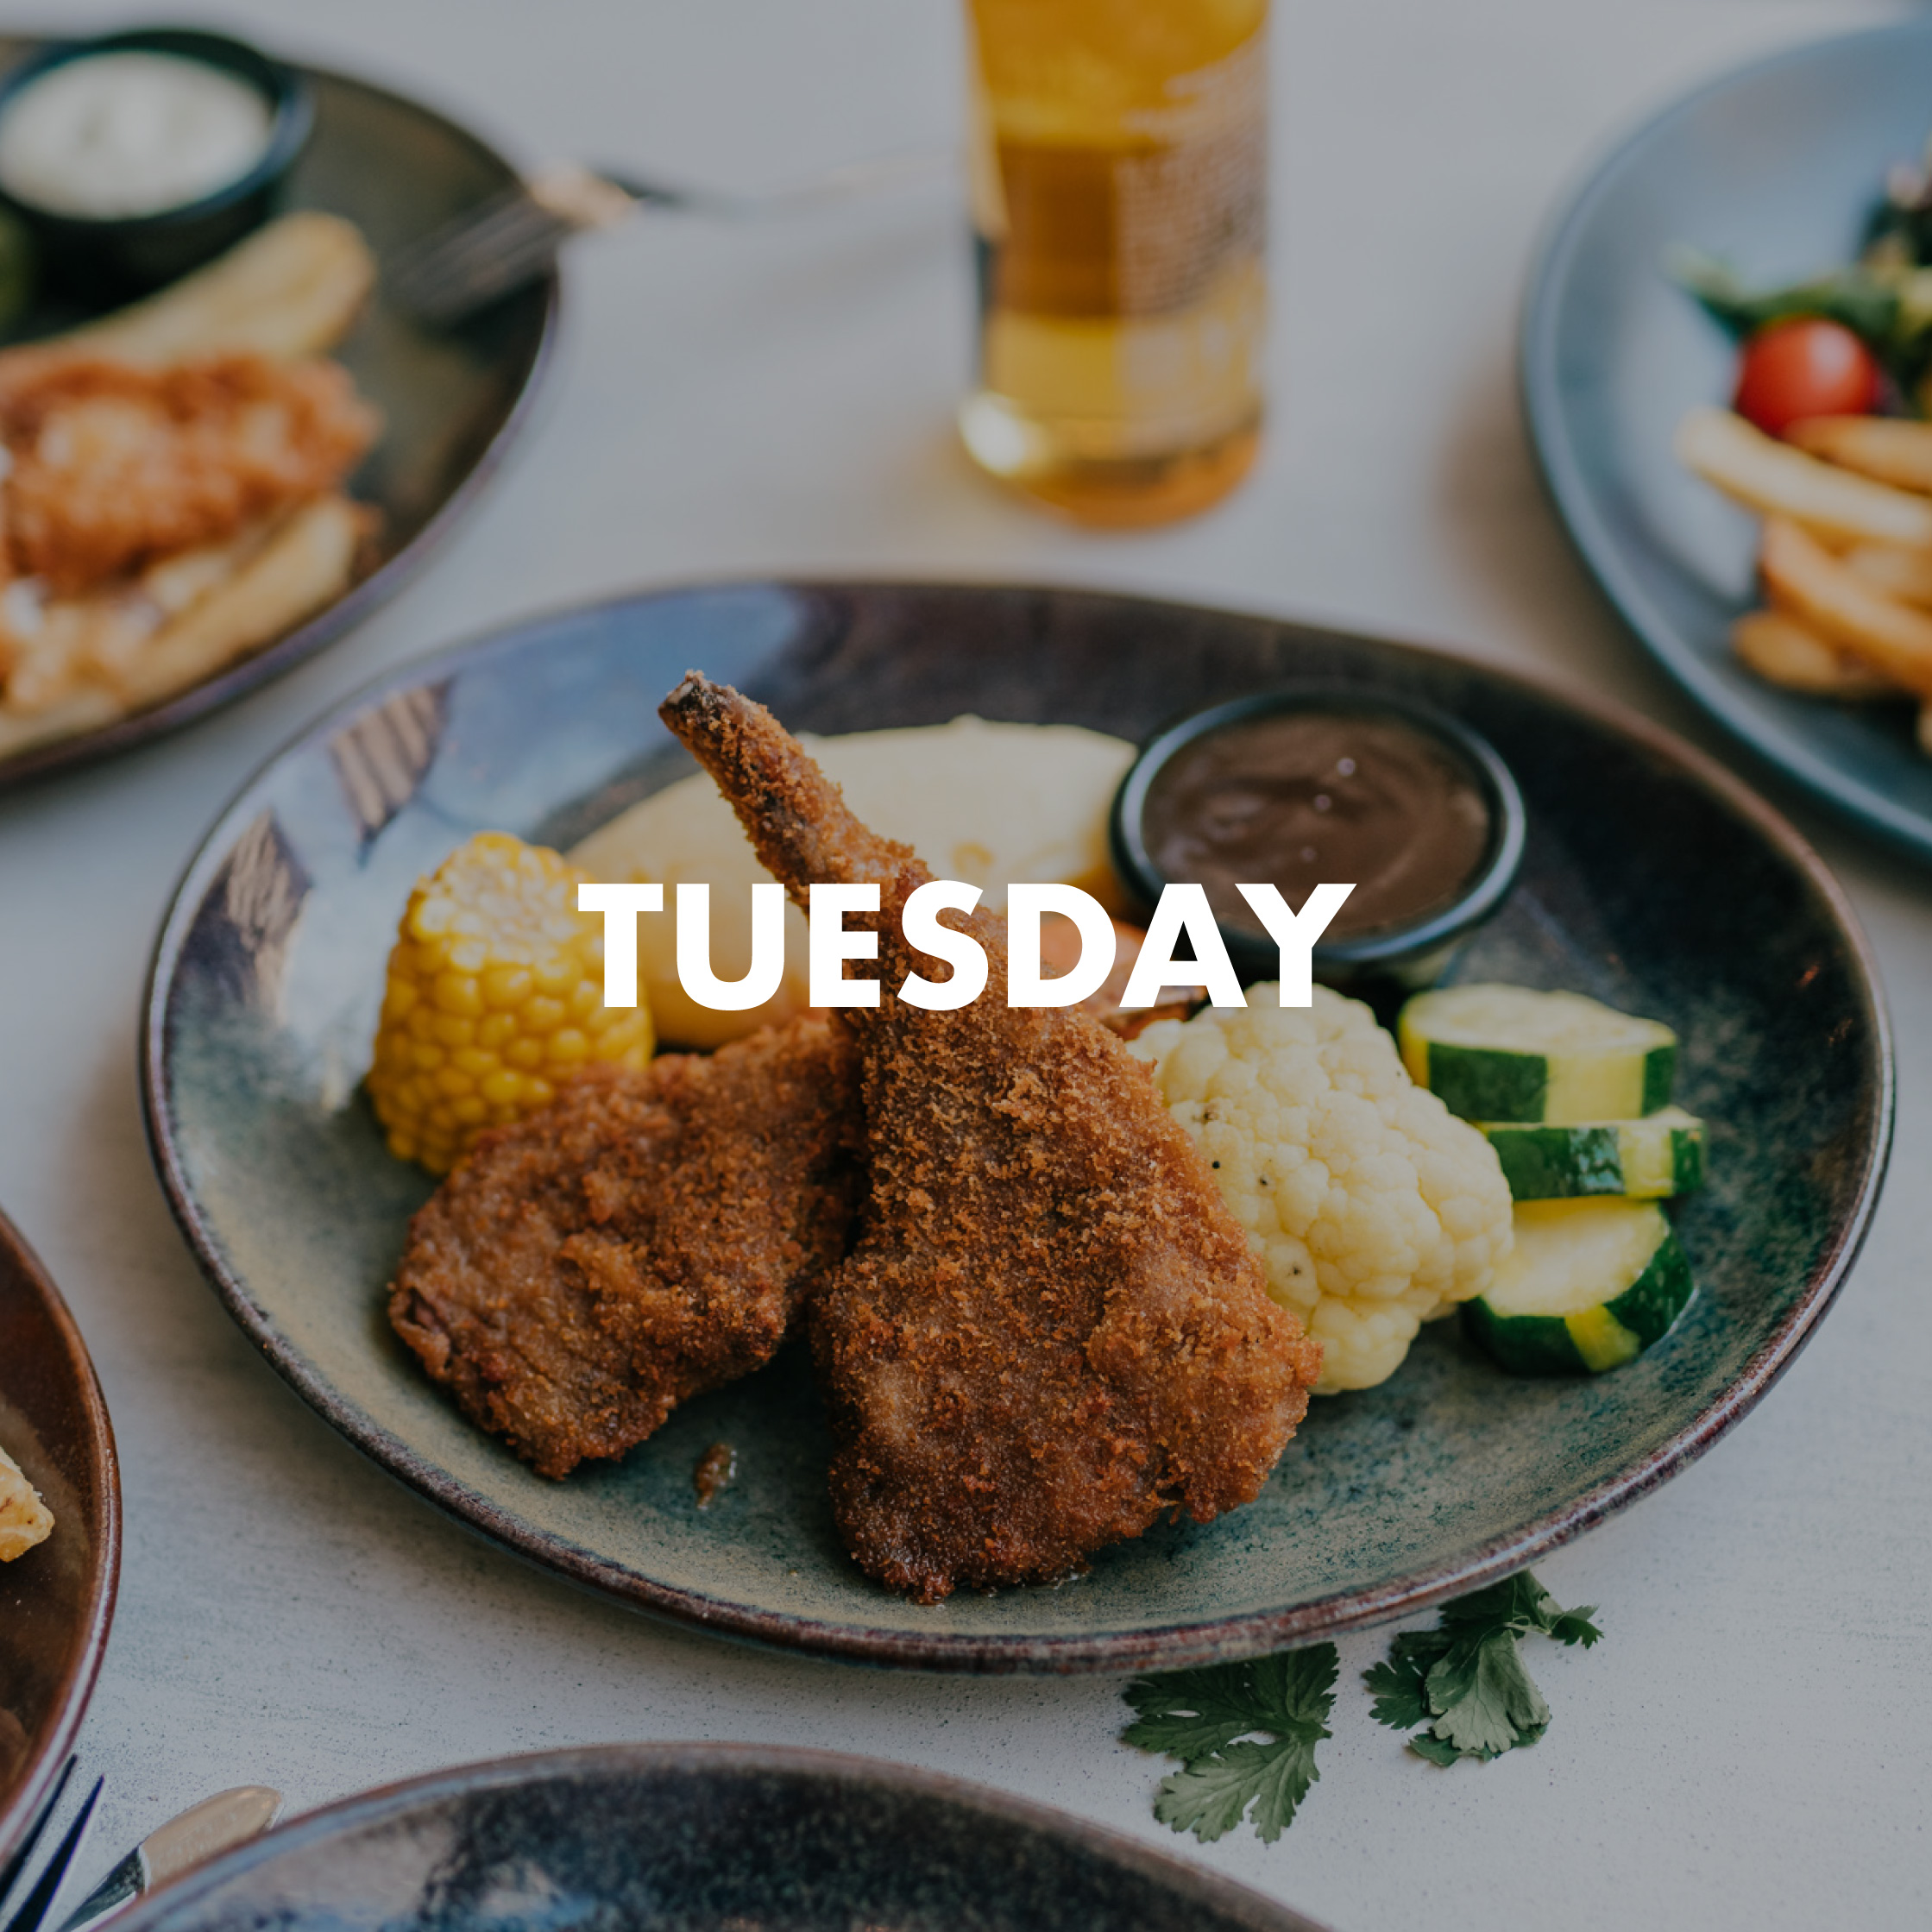 Tuesday_Food-Special_Edgeworth-Tavern